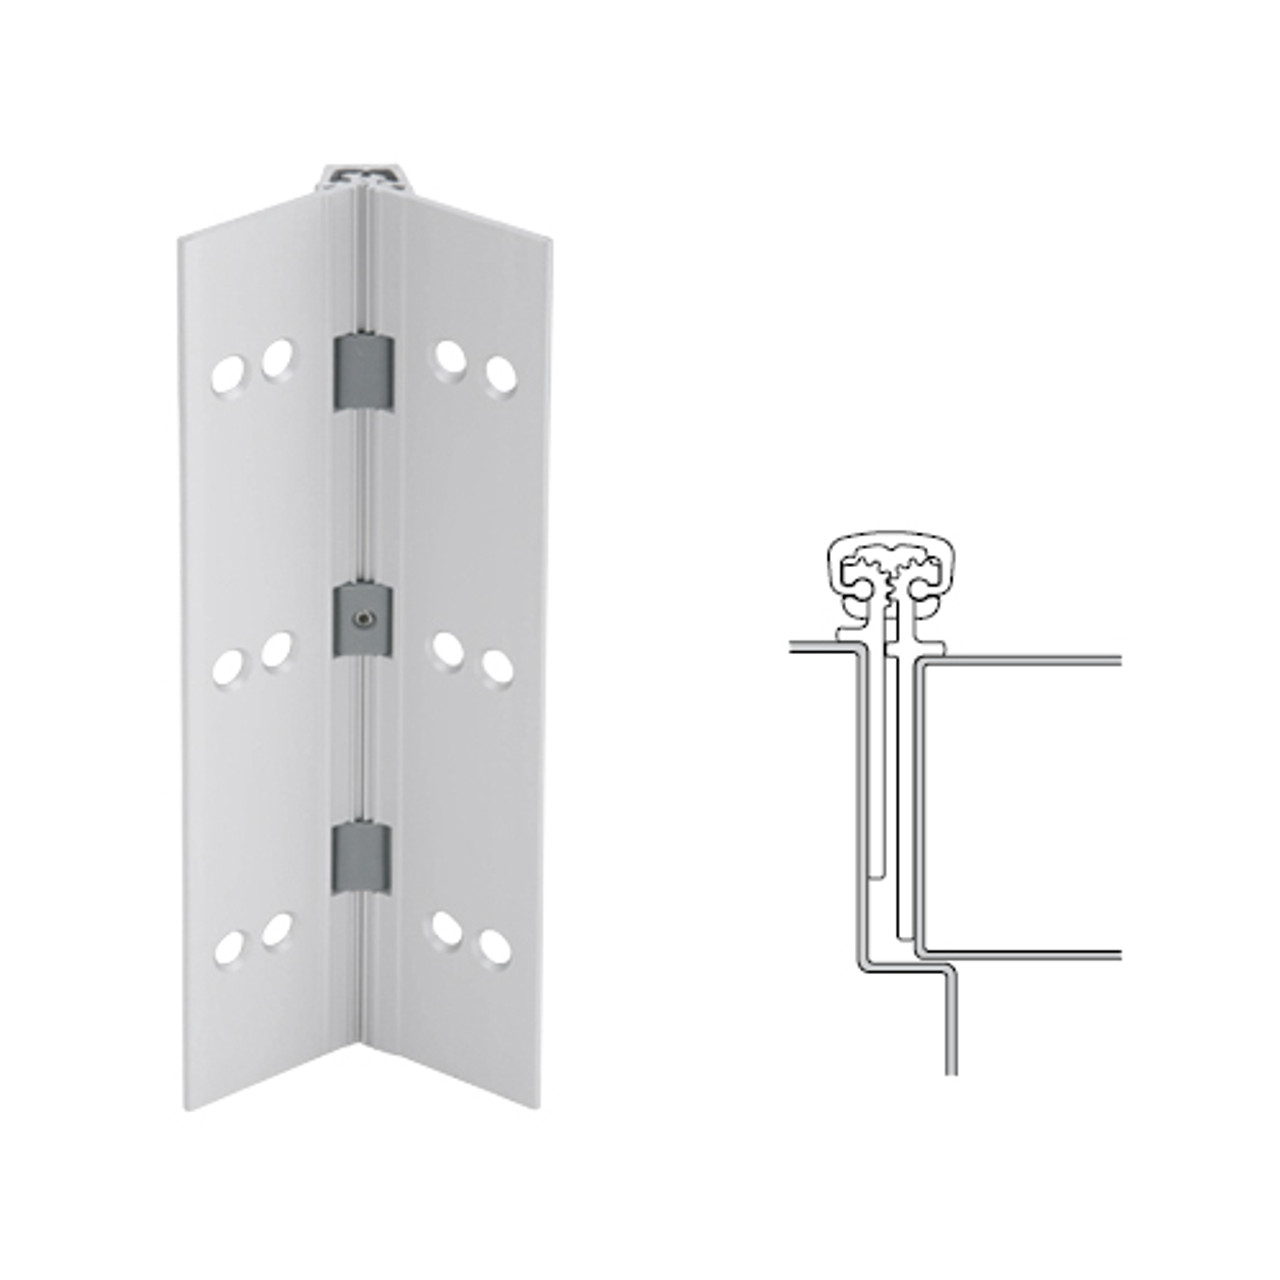 026XY-US28-95-EPT IVES Full Mortise Continuous Geared Hinges with Electrical Power Transfer Prep in Satin Aluminum